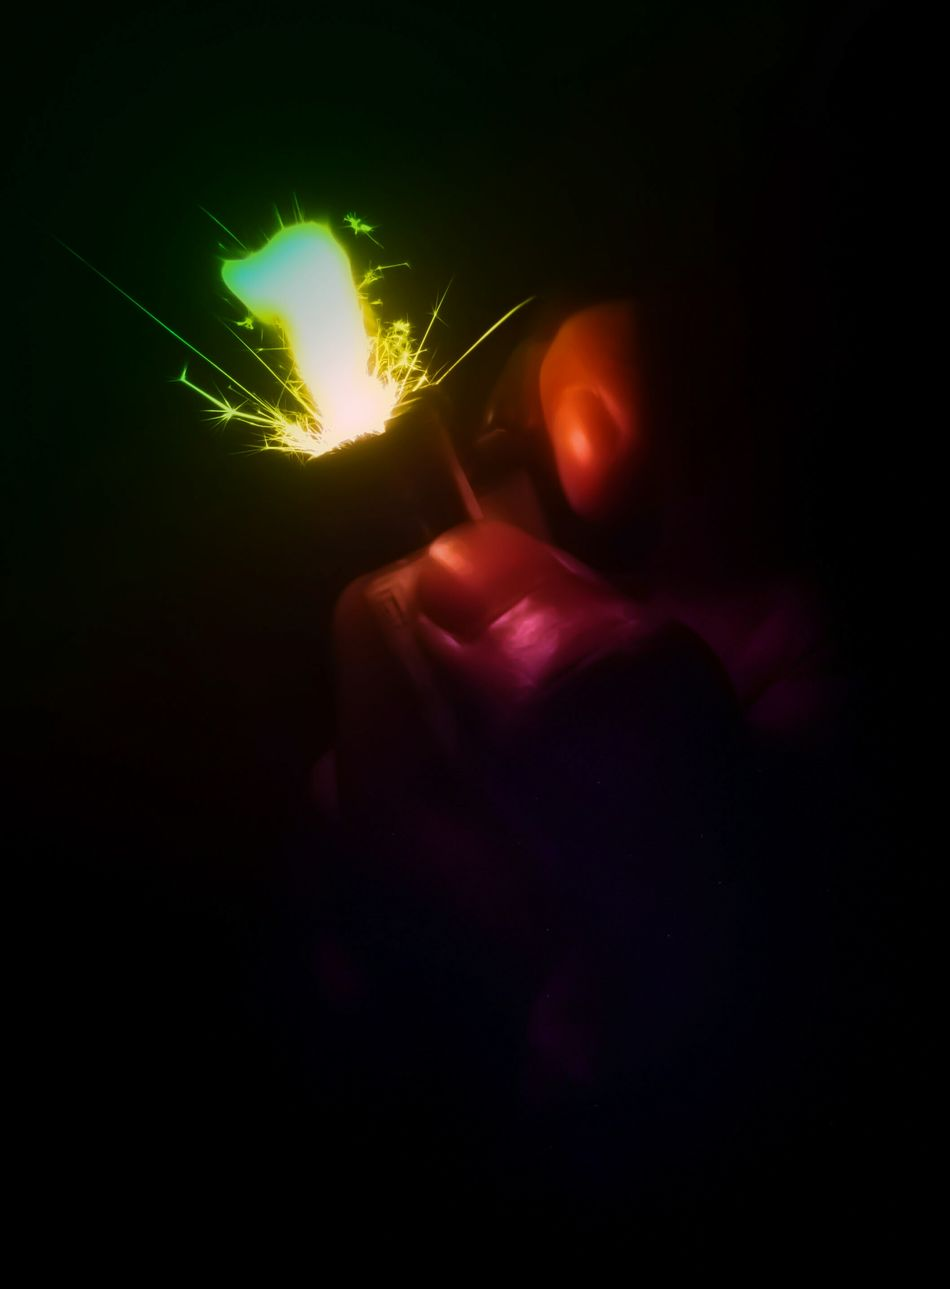 There's a spark in you, You just gotta ignite the light and let it shine. Night Illuminated Light Effect Psychedelic Spark Soul Lighter Hallucinations Colors Neon Flash Long Exposure EyeEmNewHere Oneplus2 Mobilephotography Welcome To Black